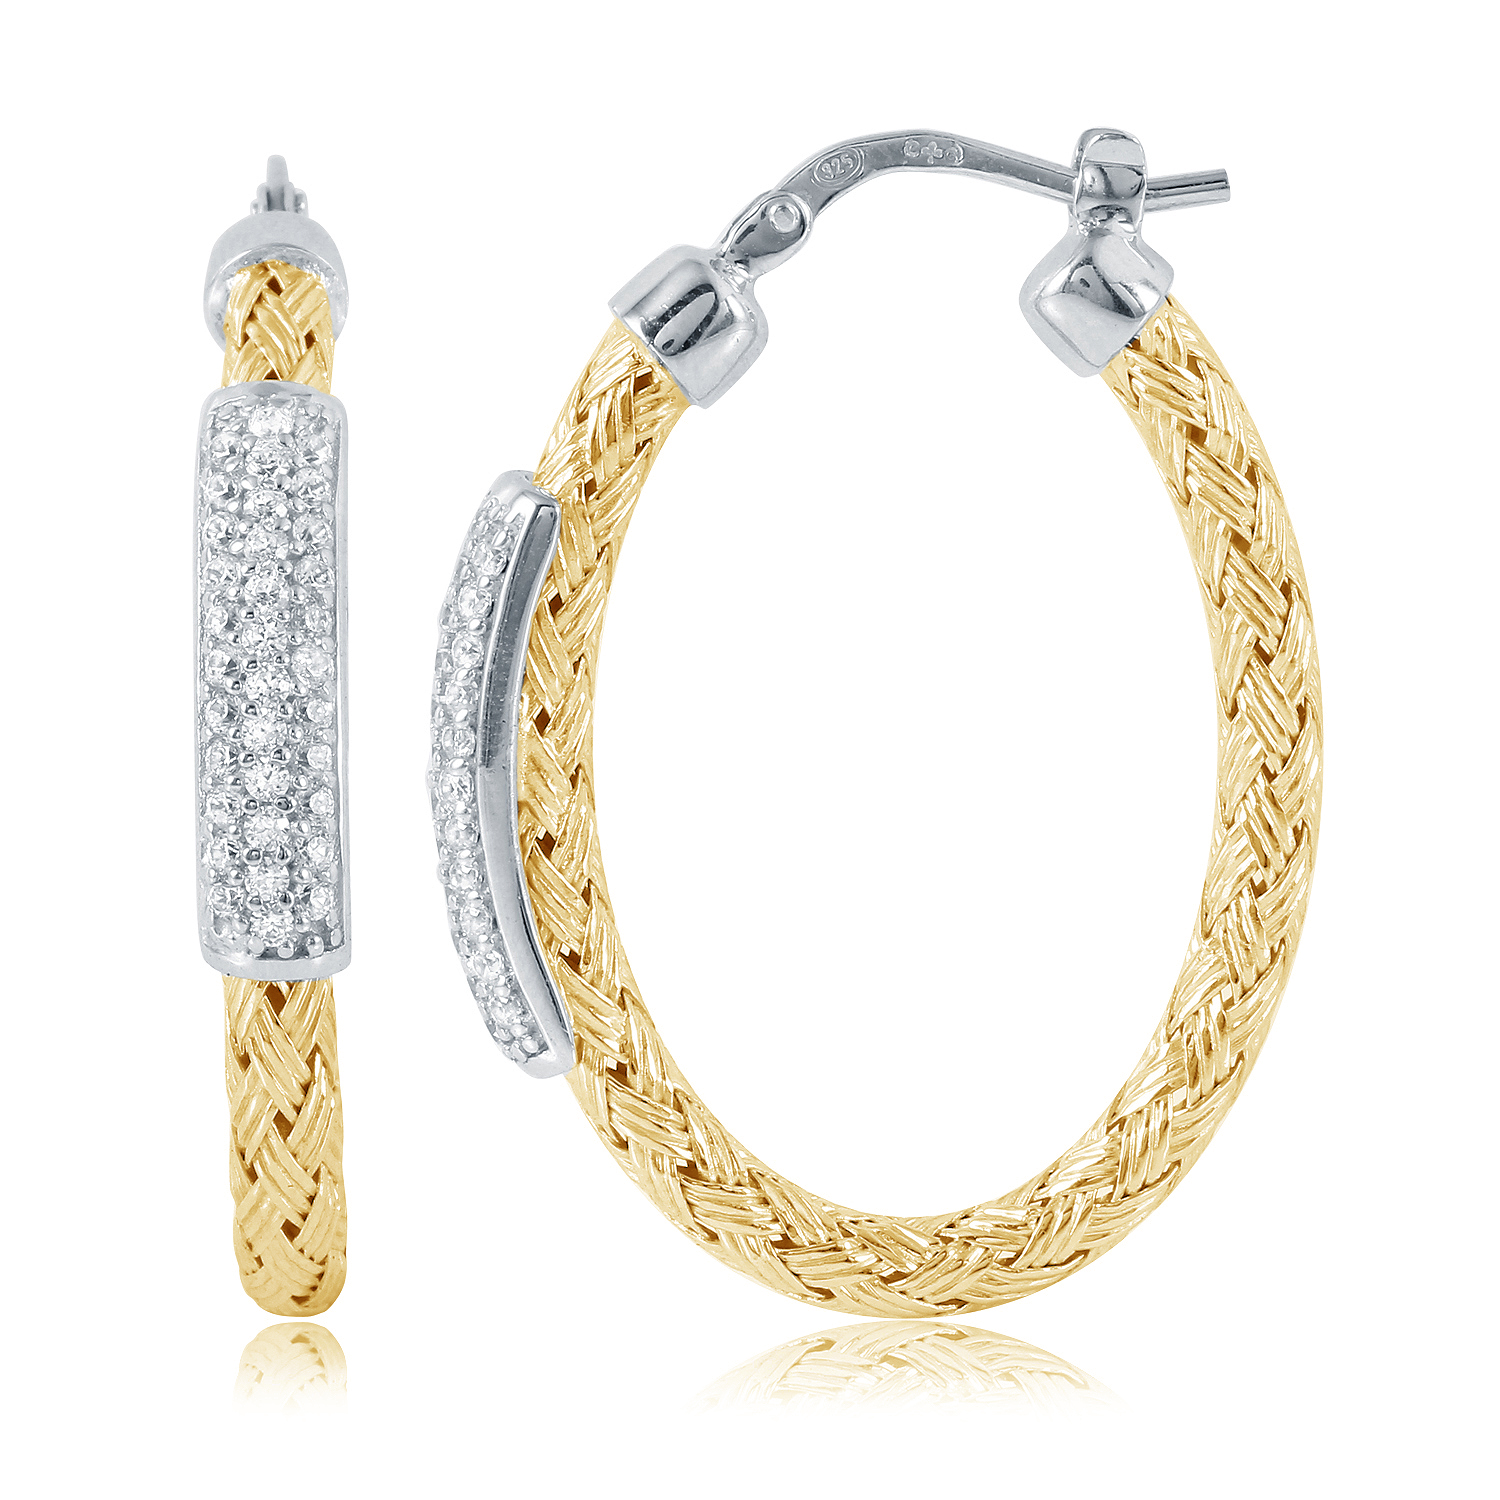 CHARLES GARNIER - Sterling Silver and CZ Hoop Earrings, 35mm